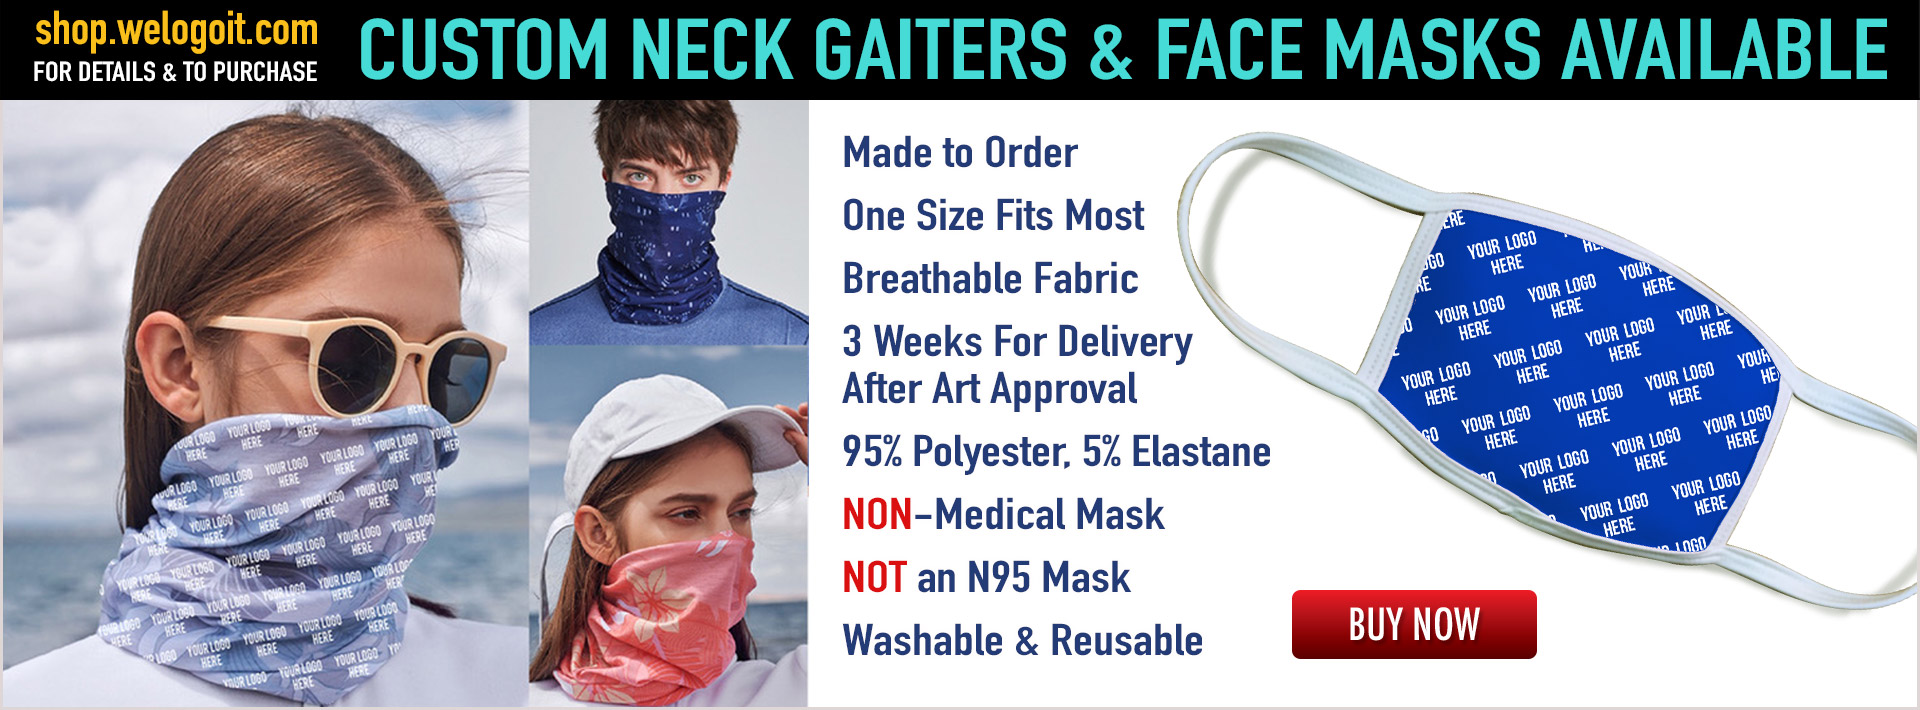 Custom Neck Gaiters and Face Masks